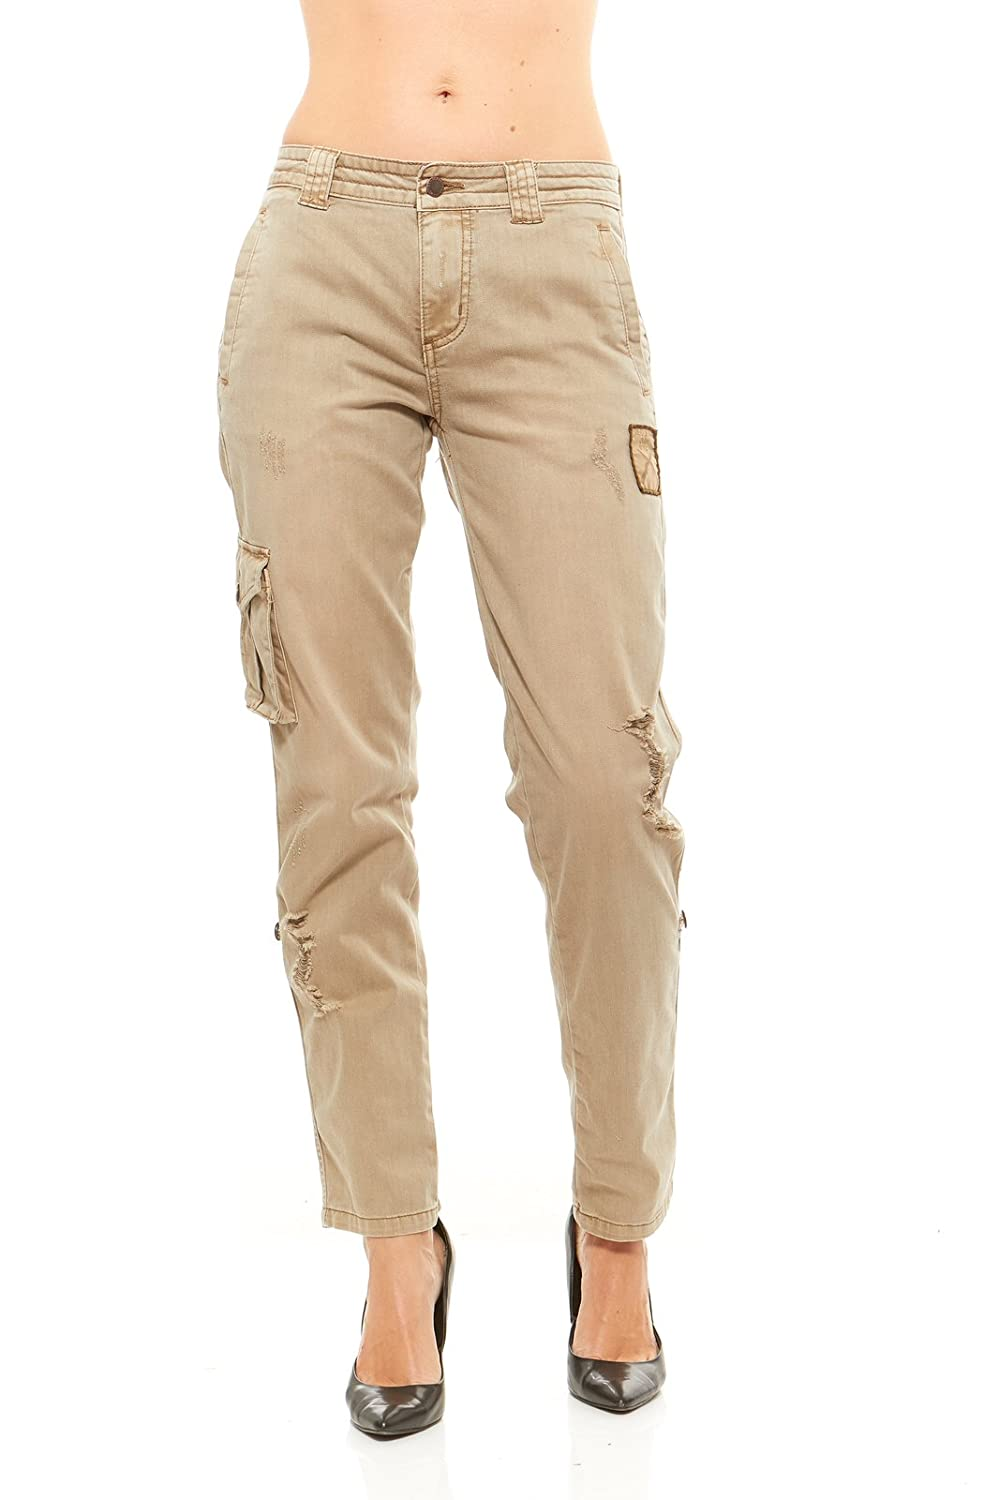 4255e4caca814 Red Jeans Women's Women Military Army Fatigue Denim Camo Pants: Amazon.ca:  Clothing & Accessories